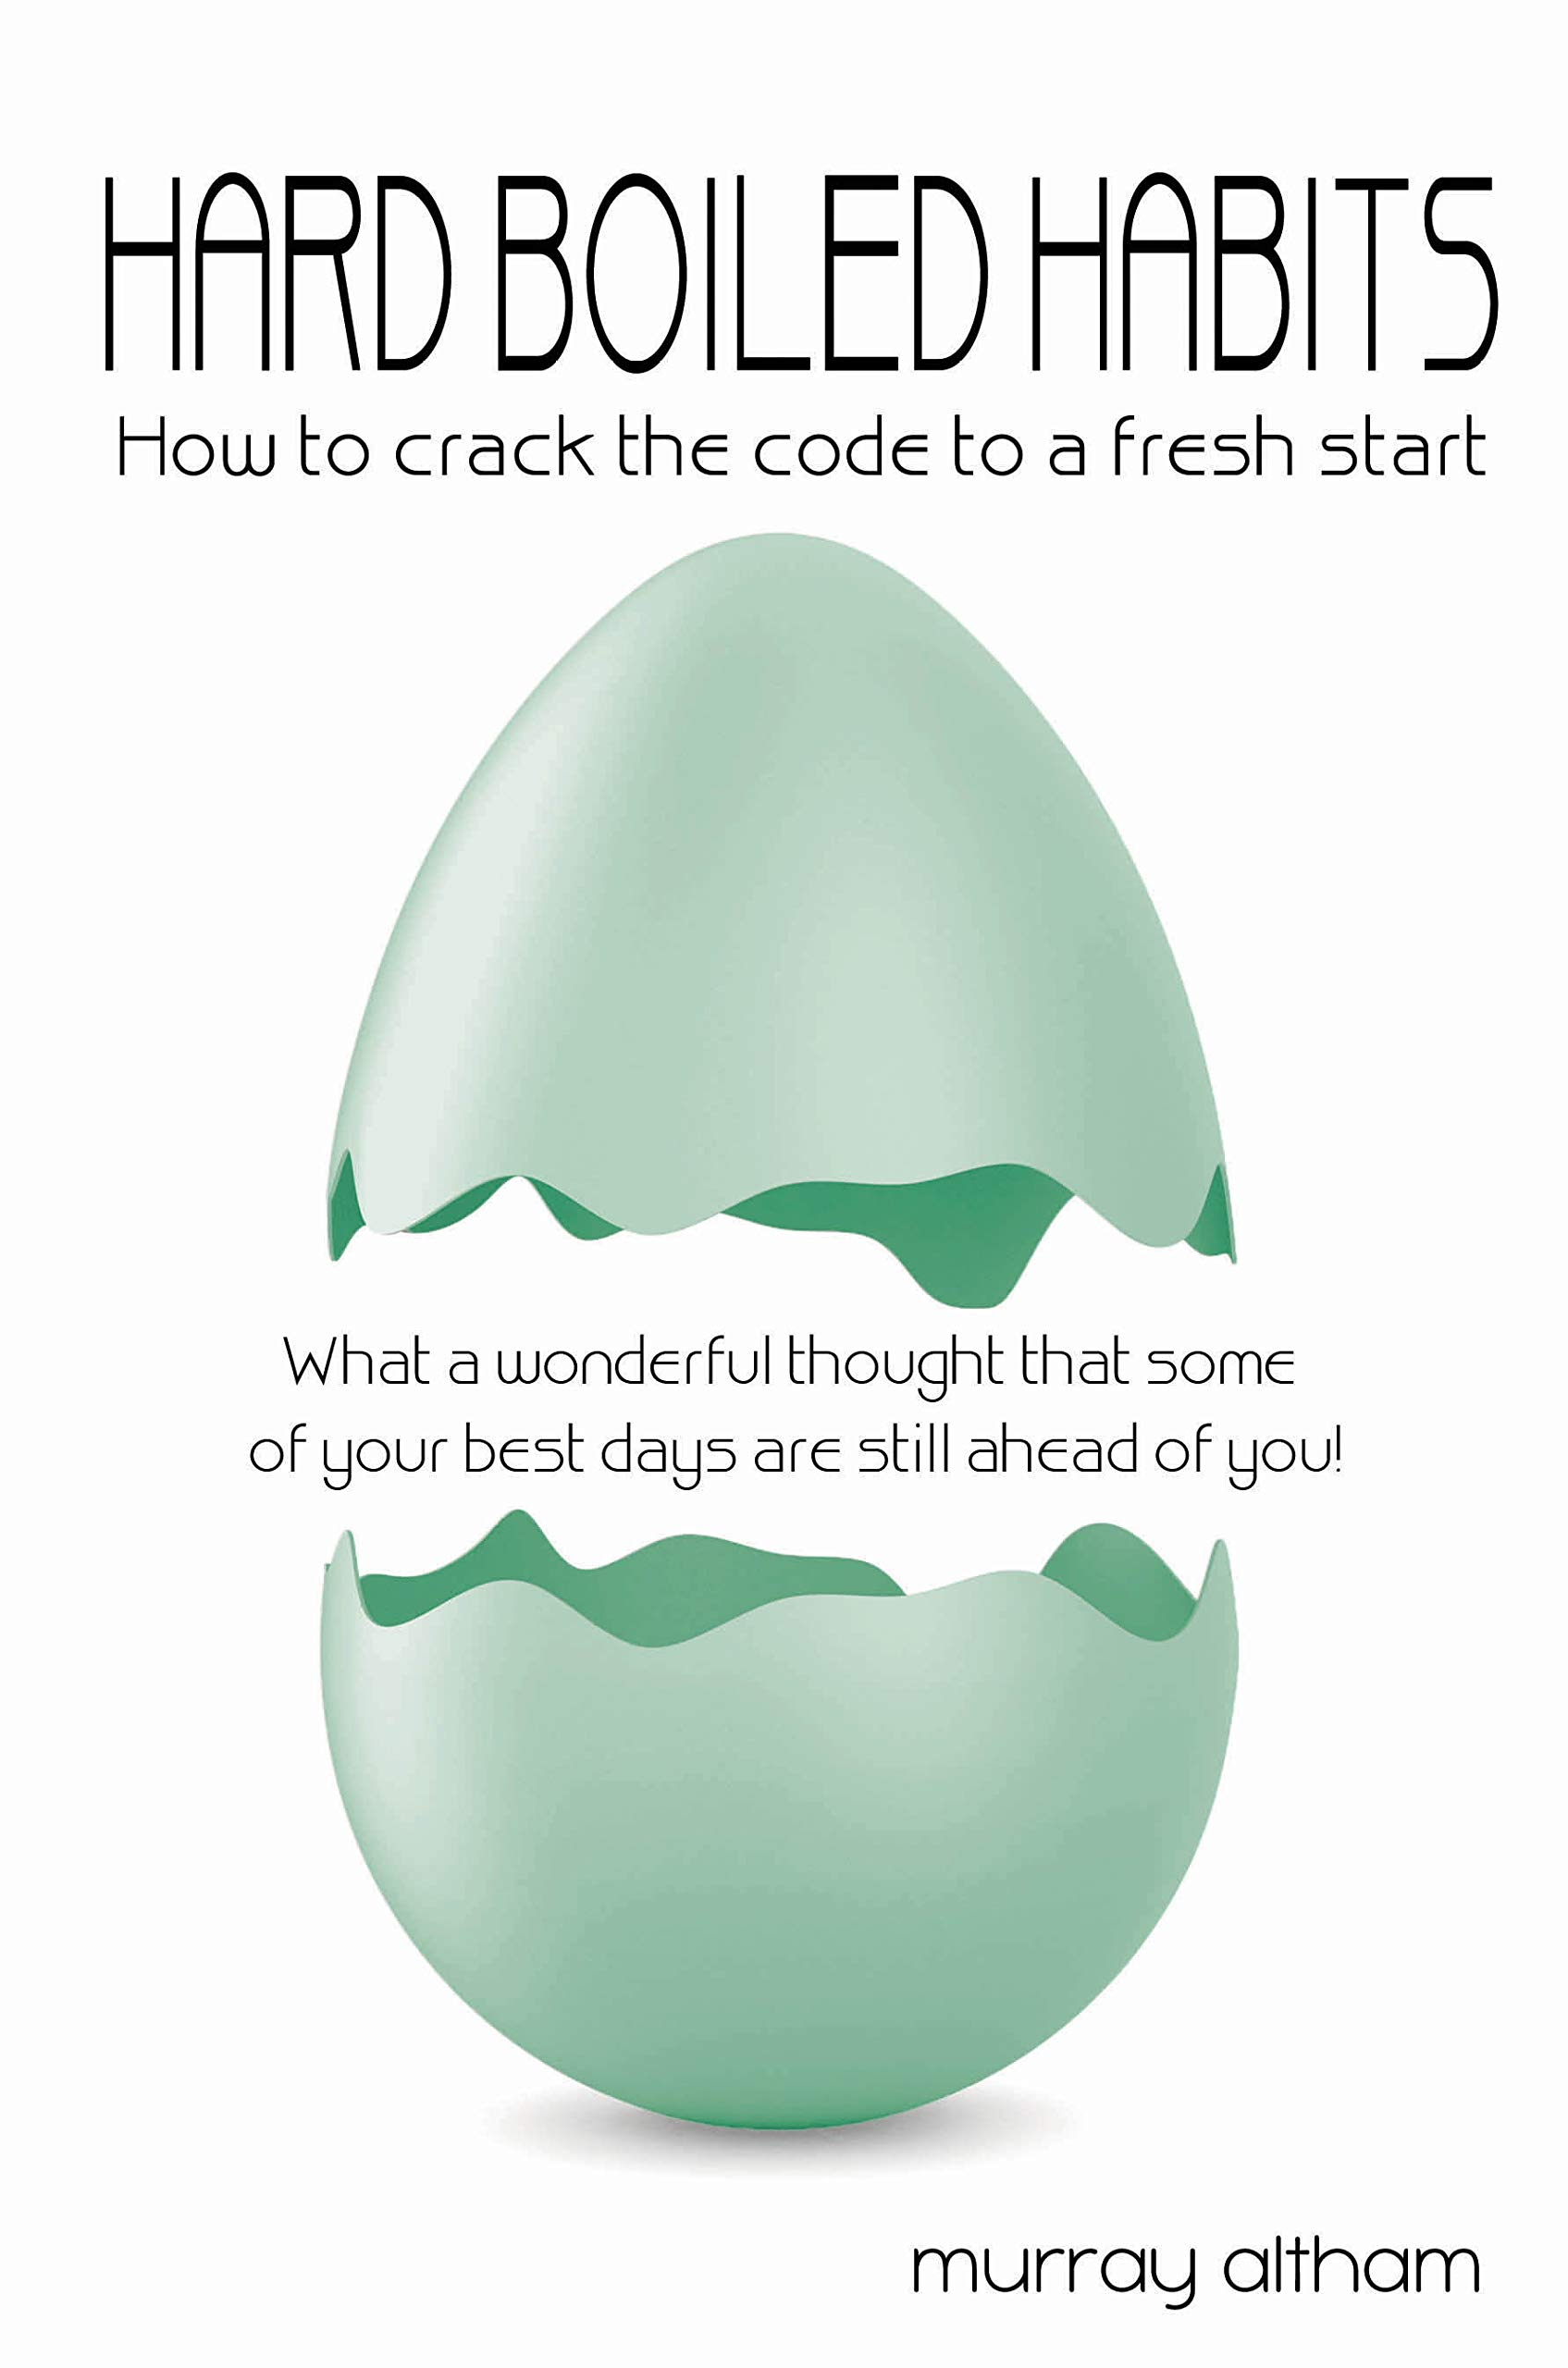 Hard Boiled Habits: How to crack the code to a fresh start